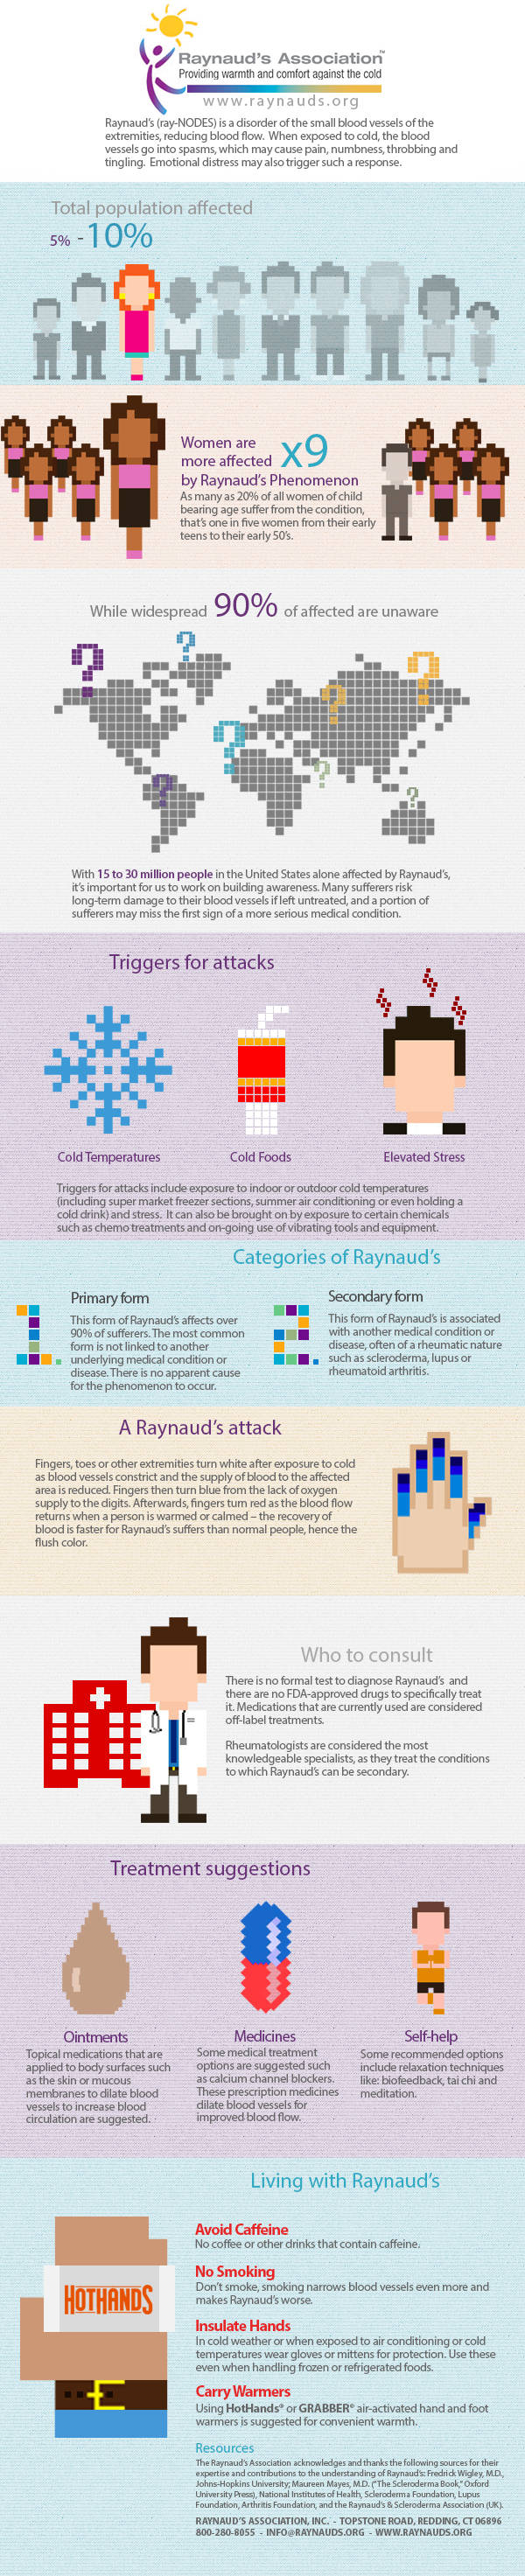 Hot Facts About Raynaud's